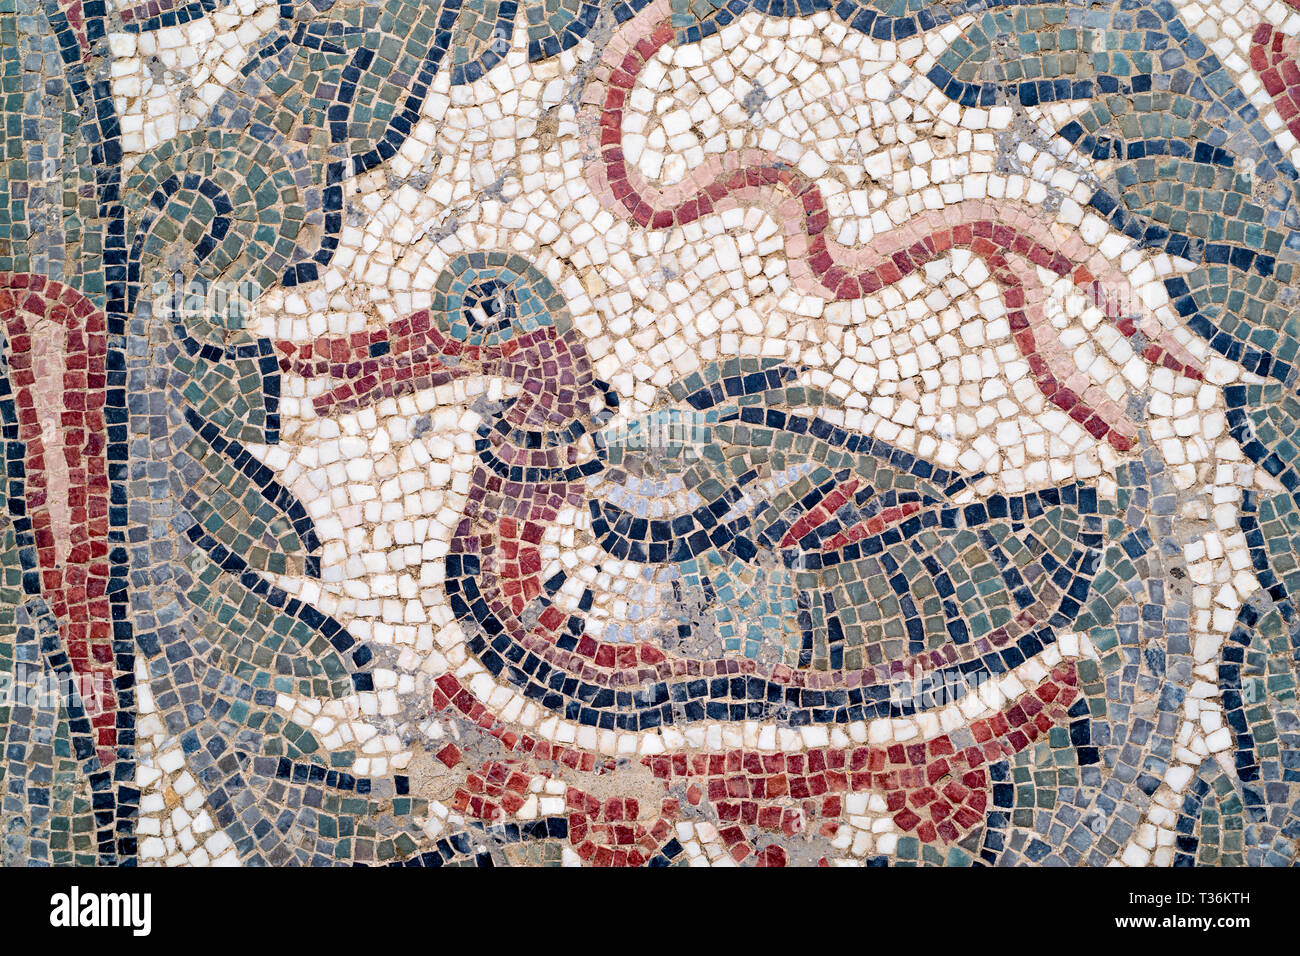 Famous mosaics and mosiac art of animals by Ovoid Portico at Roman Villa del Casale, Piazza Armerina, Sicily, Italy Stock Photo